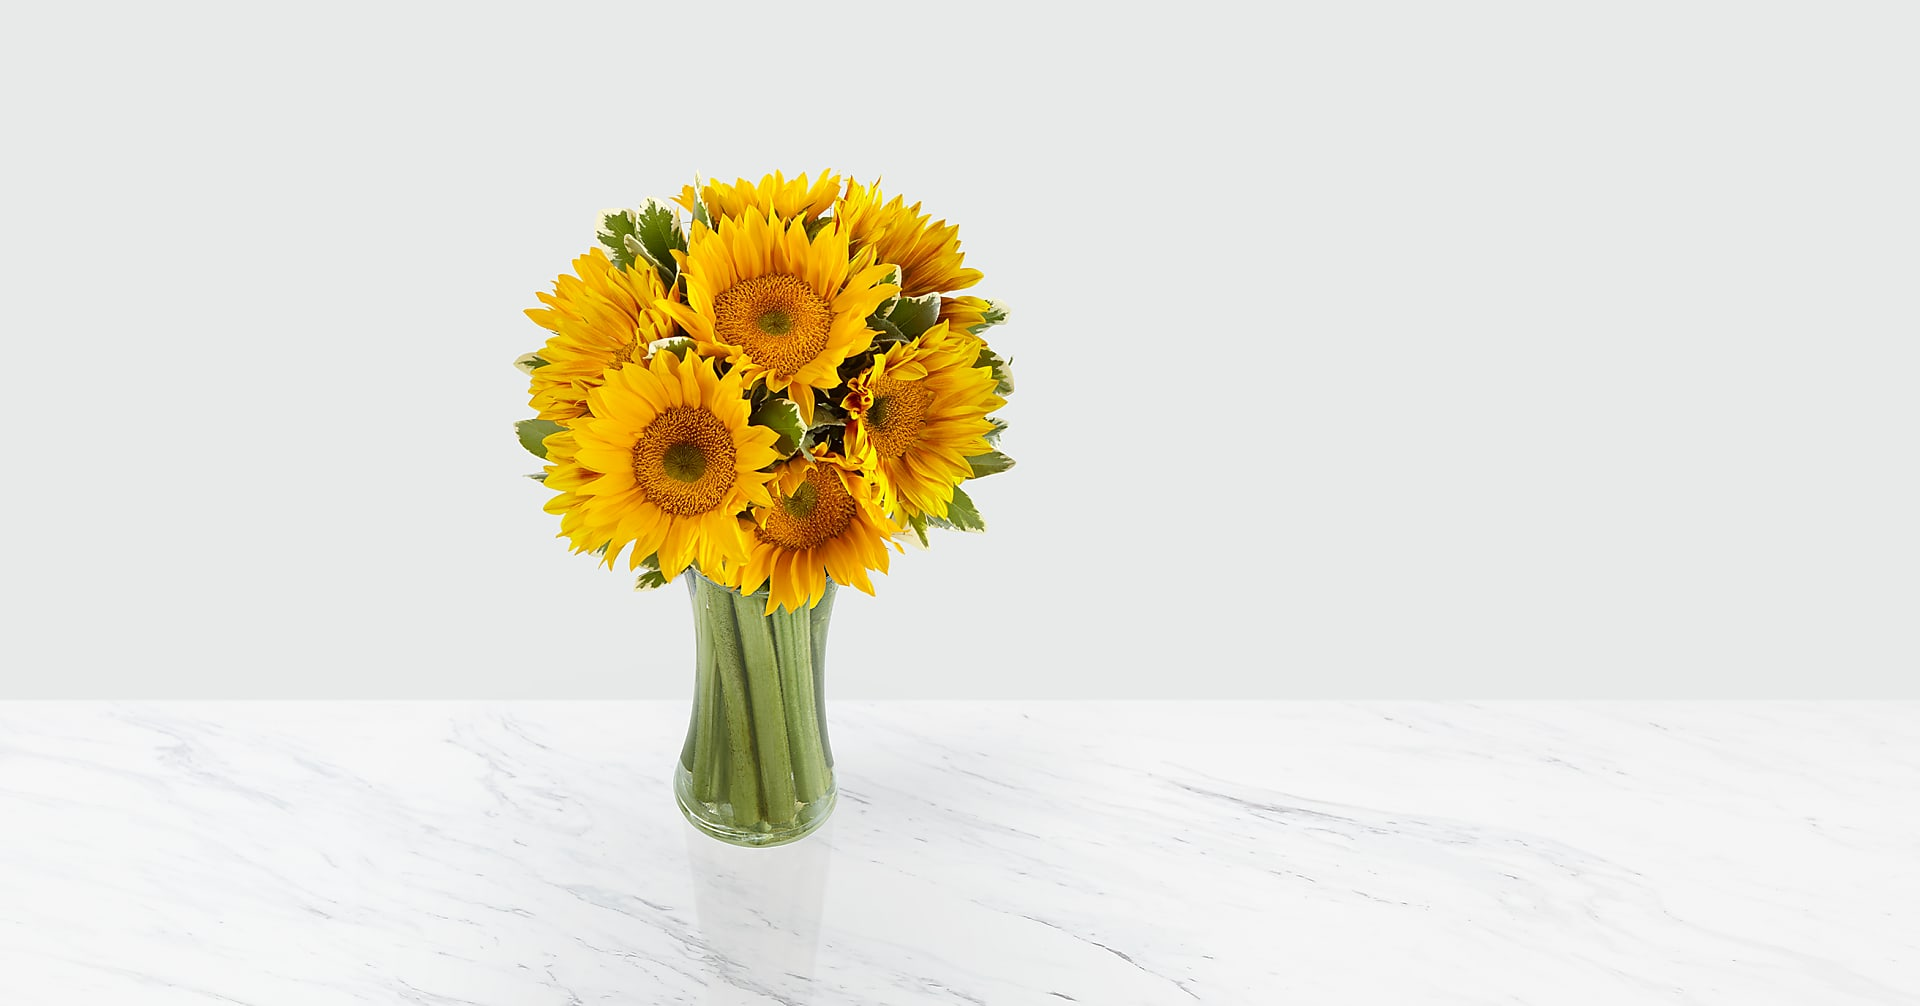 Endless Summer Sunflower Bouquet - 9 Stems with Vase - Image 1 Of 5